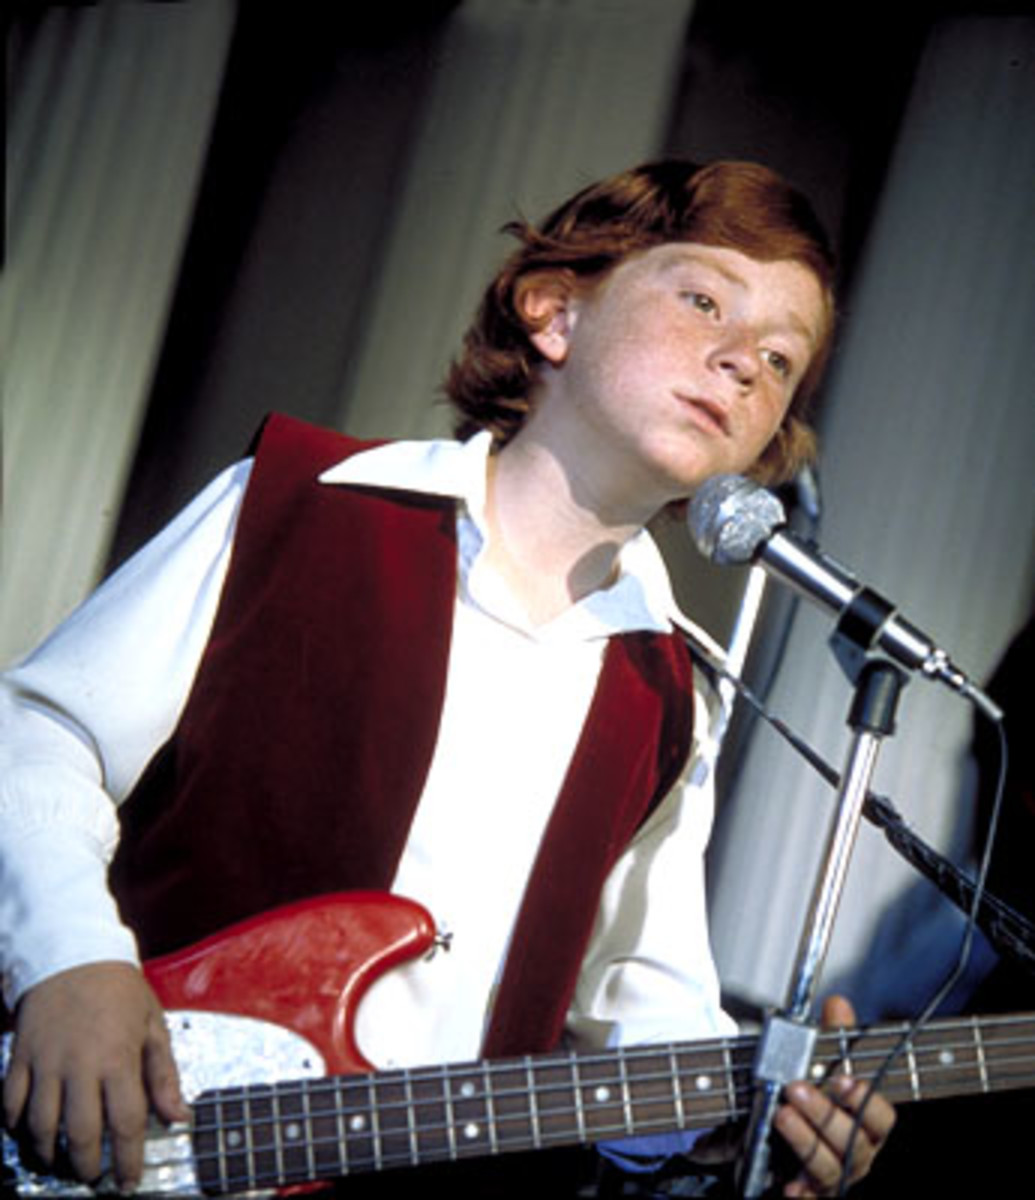 A young Danny Bonaduce from his days on The Patridge Family